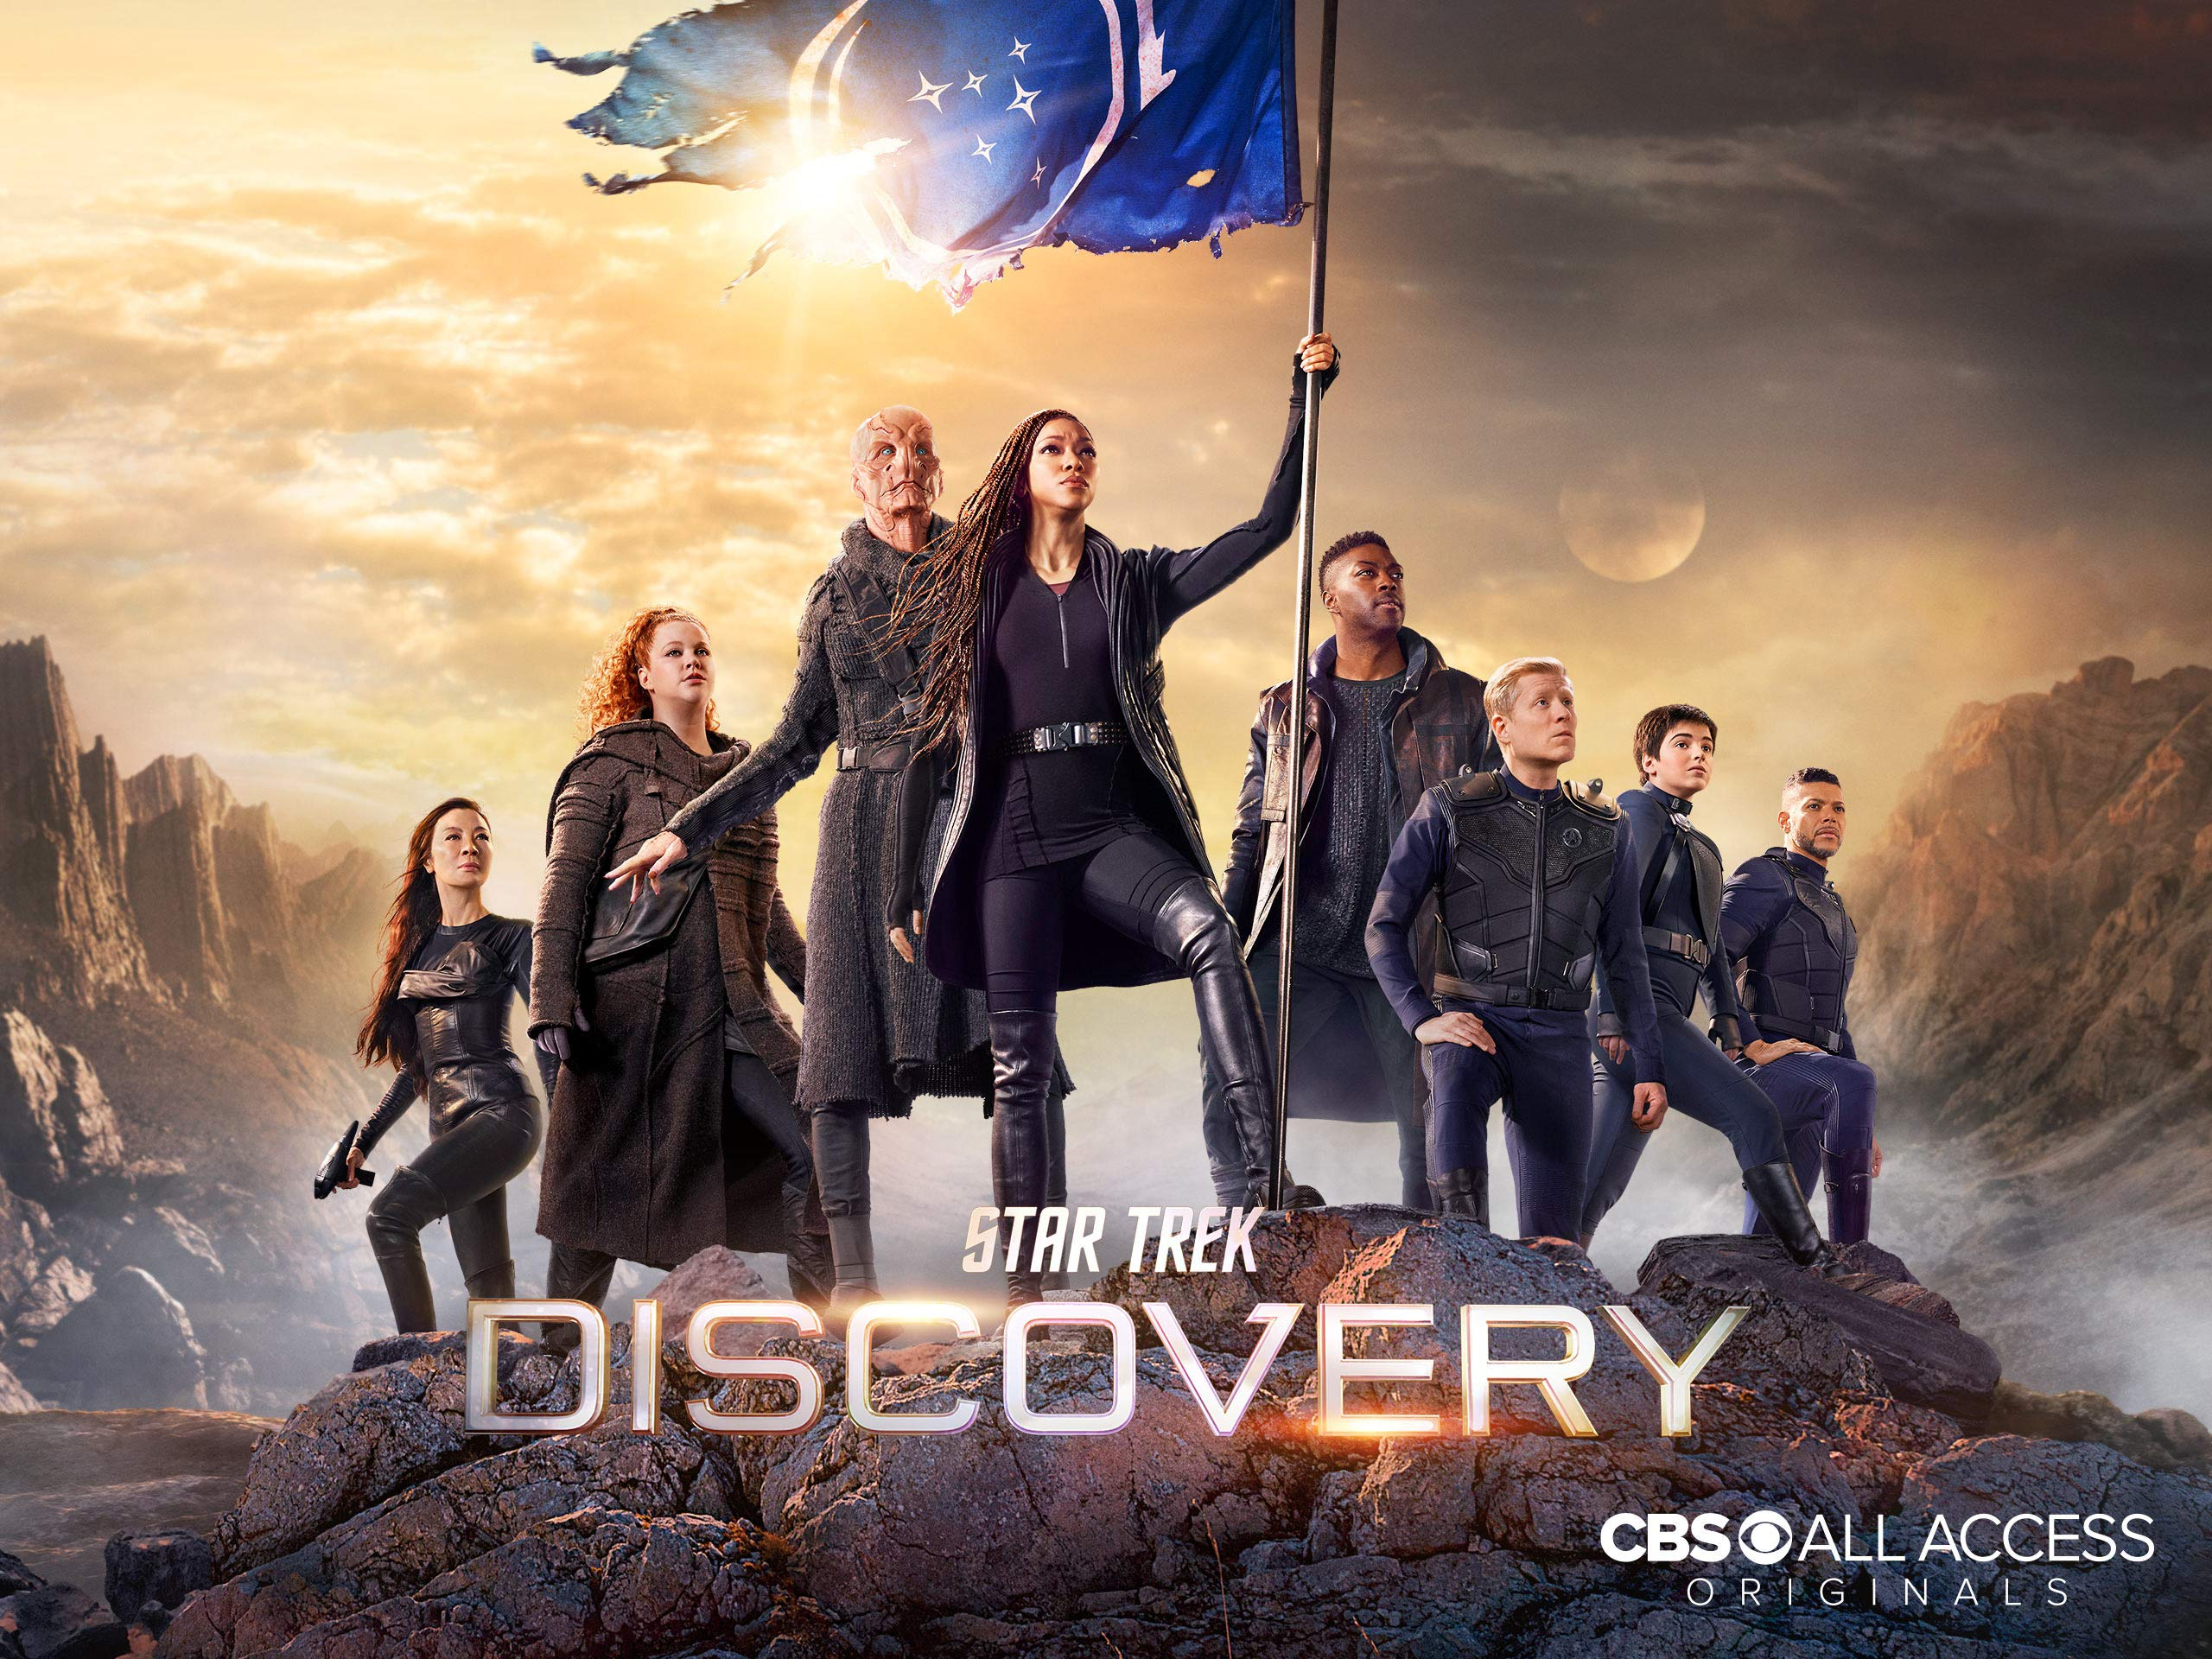 Star Trek: Discovery Season 2 Episode 9 Subtitle (English Srt) Download